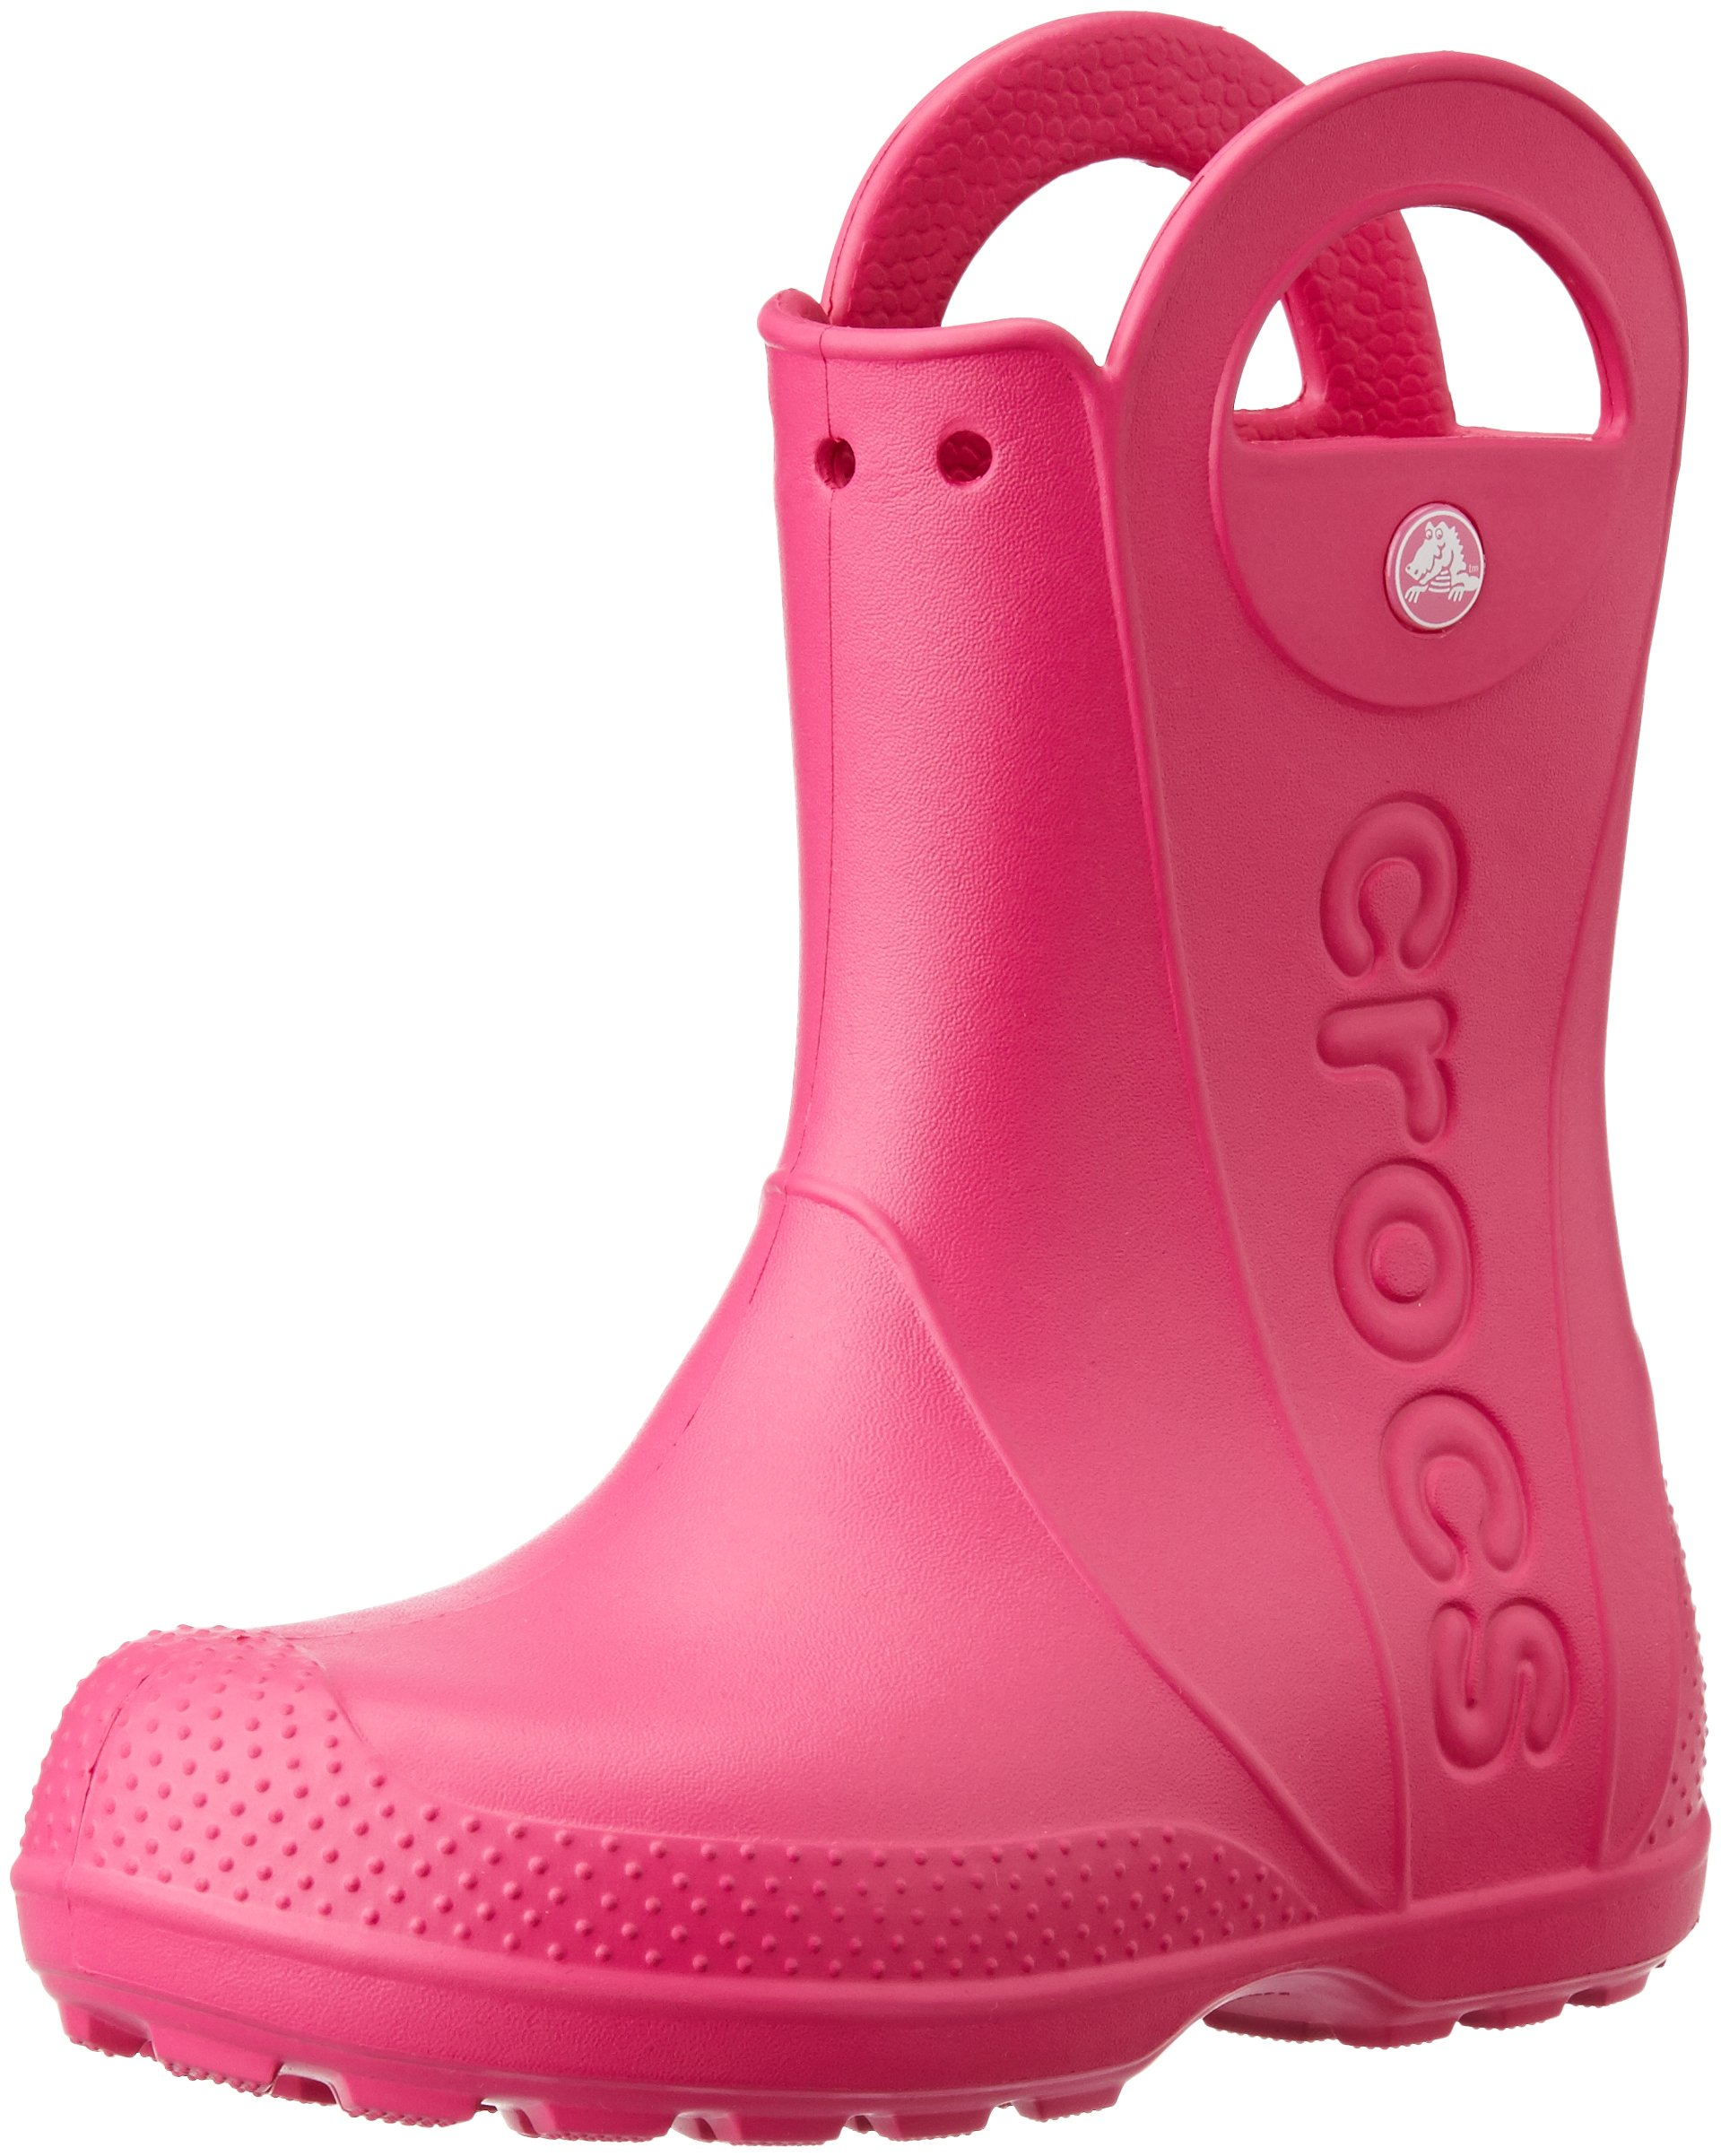 Crocs Kids' Handle It Boot,Candy Pink,2 M US Little Kid